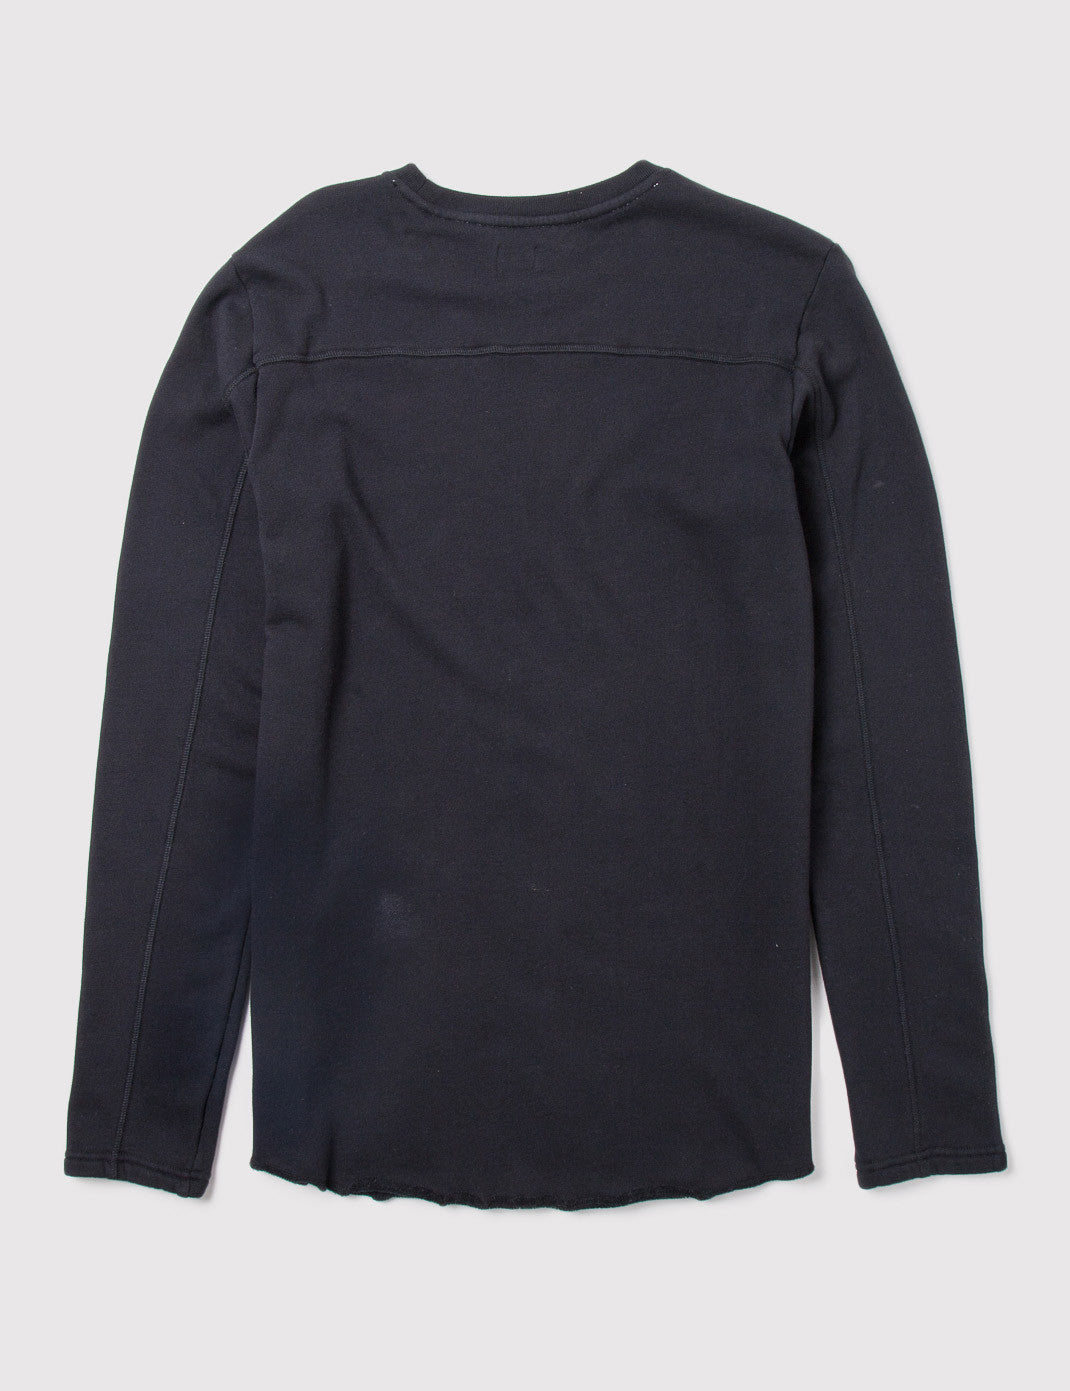 Edwin Longsleeve Terry T-Shirt - Black